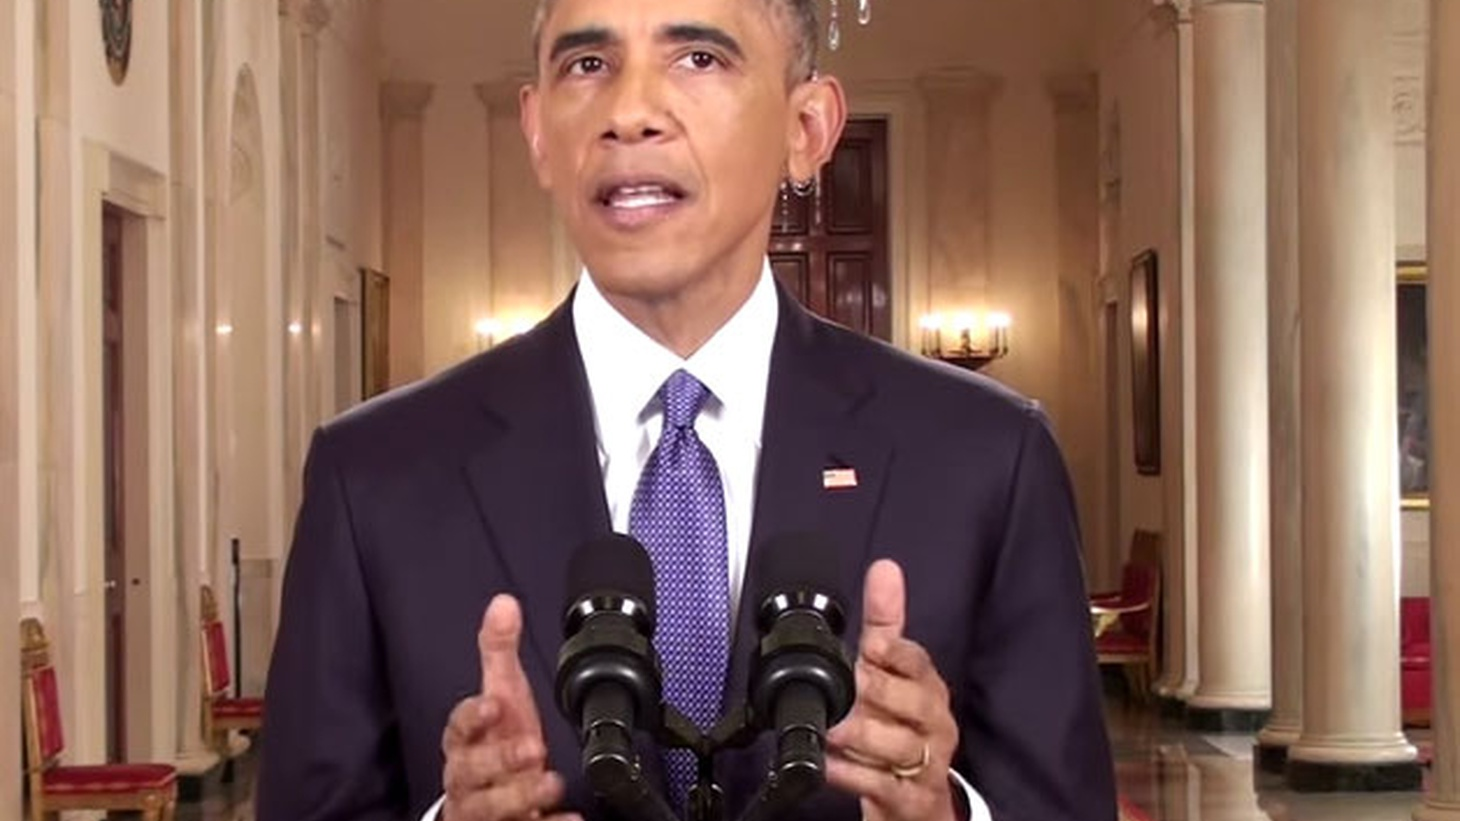 Is Obama acting as an imperial president or a common sense immigration reformer?